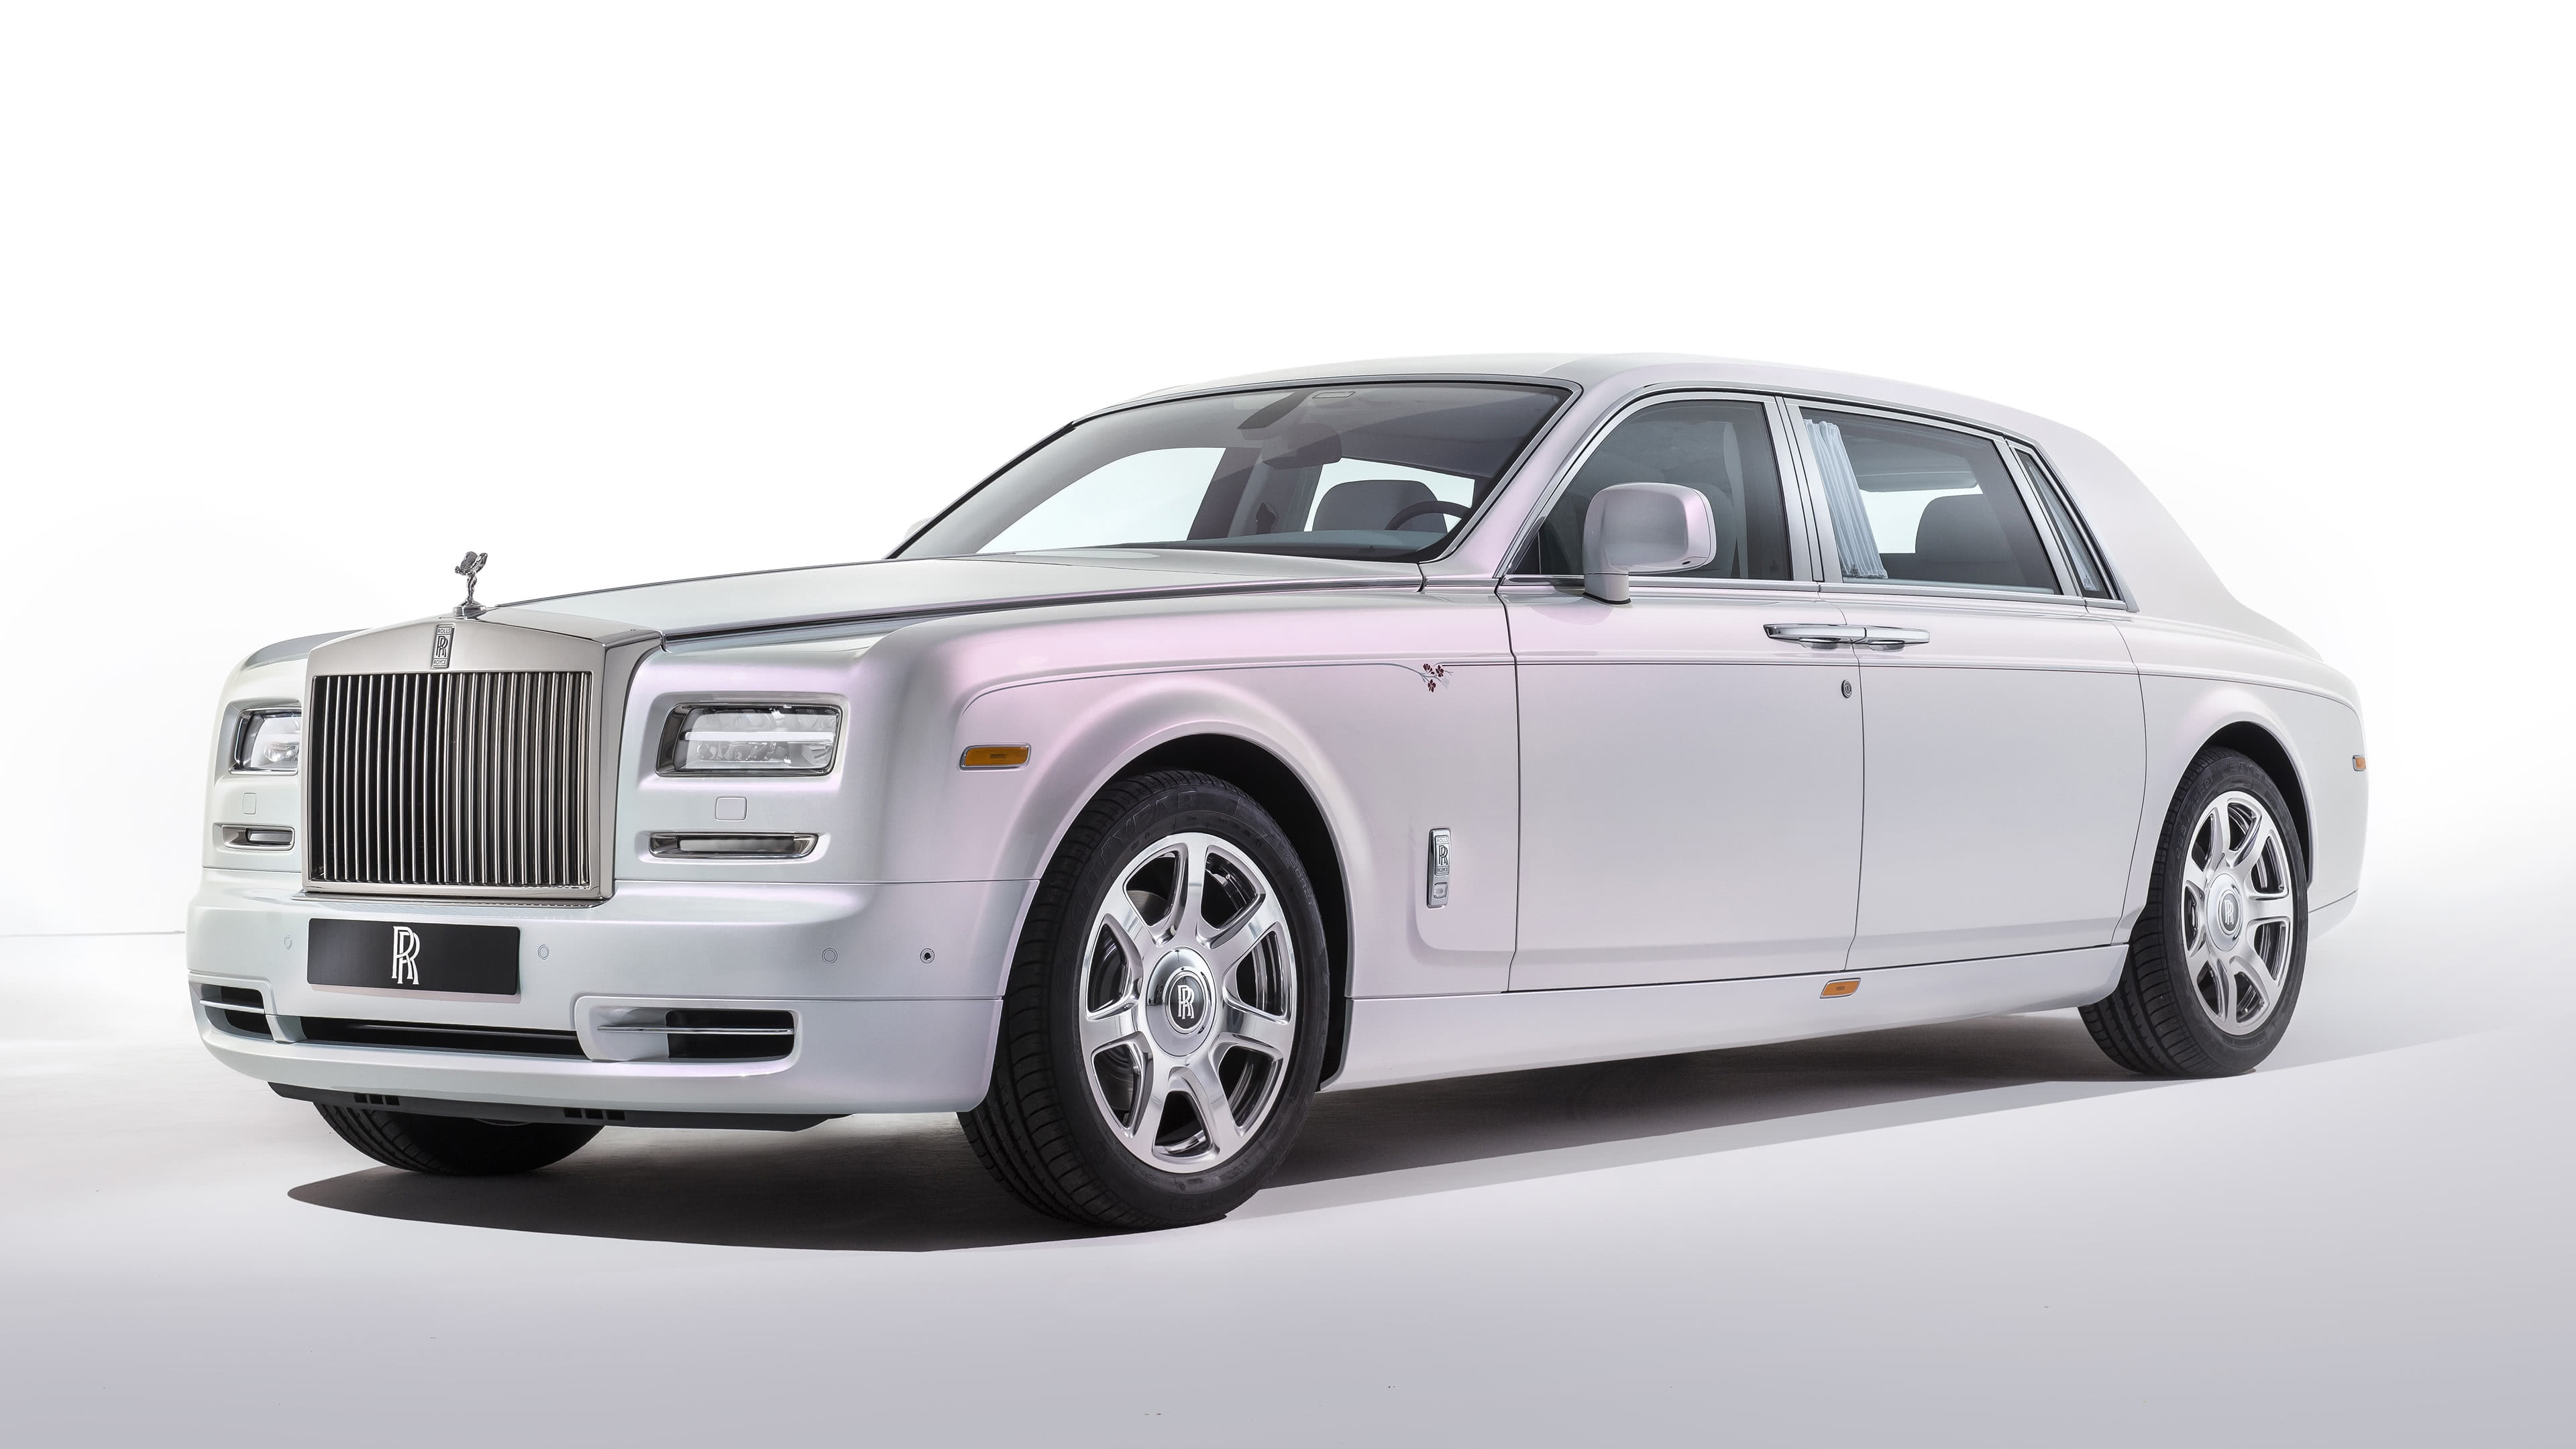 rolls royce phantom serenity sedan white uhd 4k wallpaper